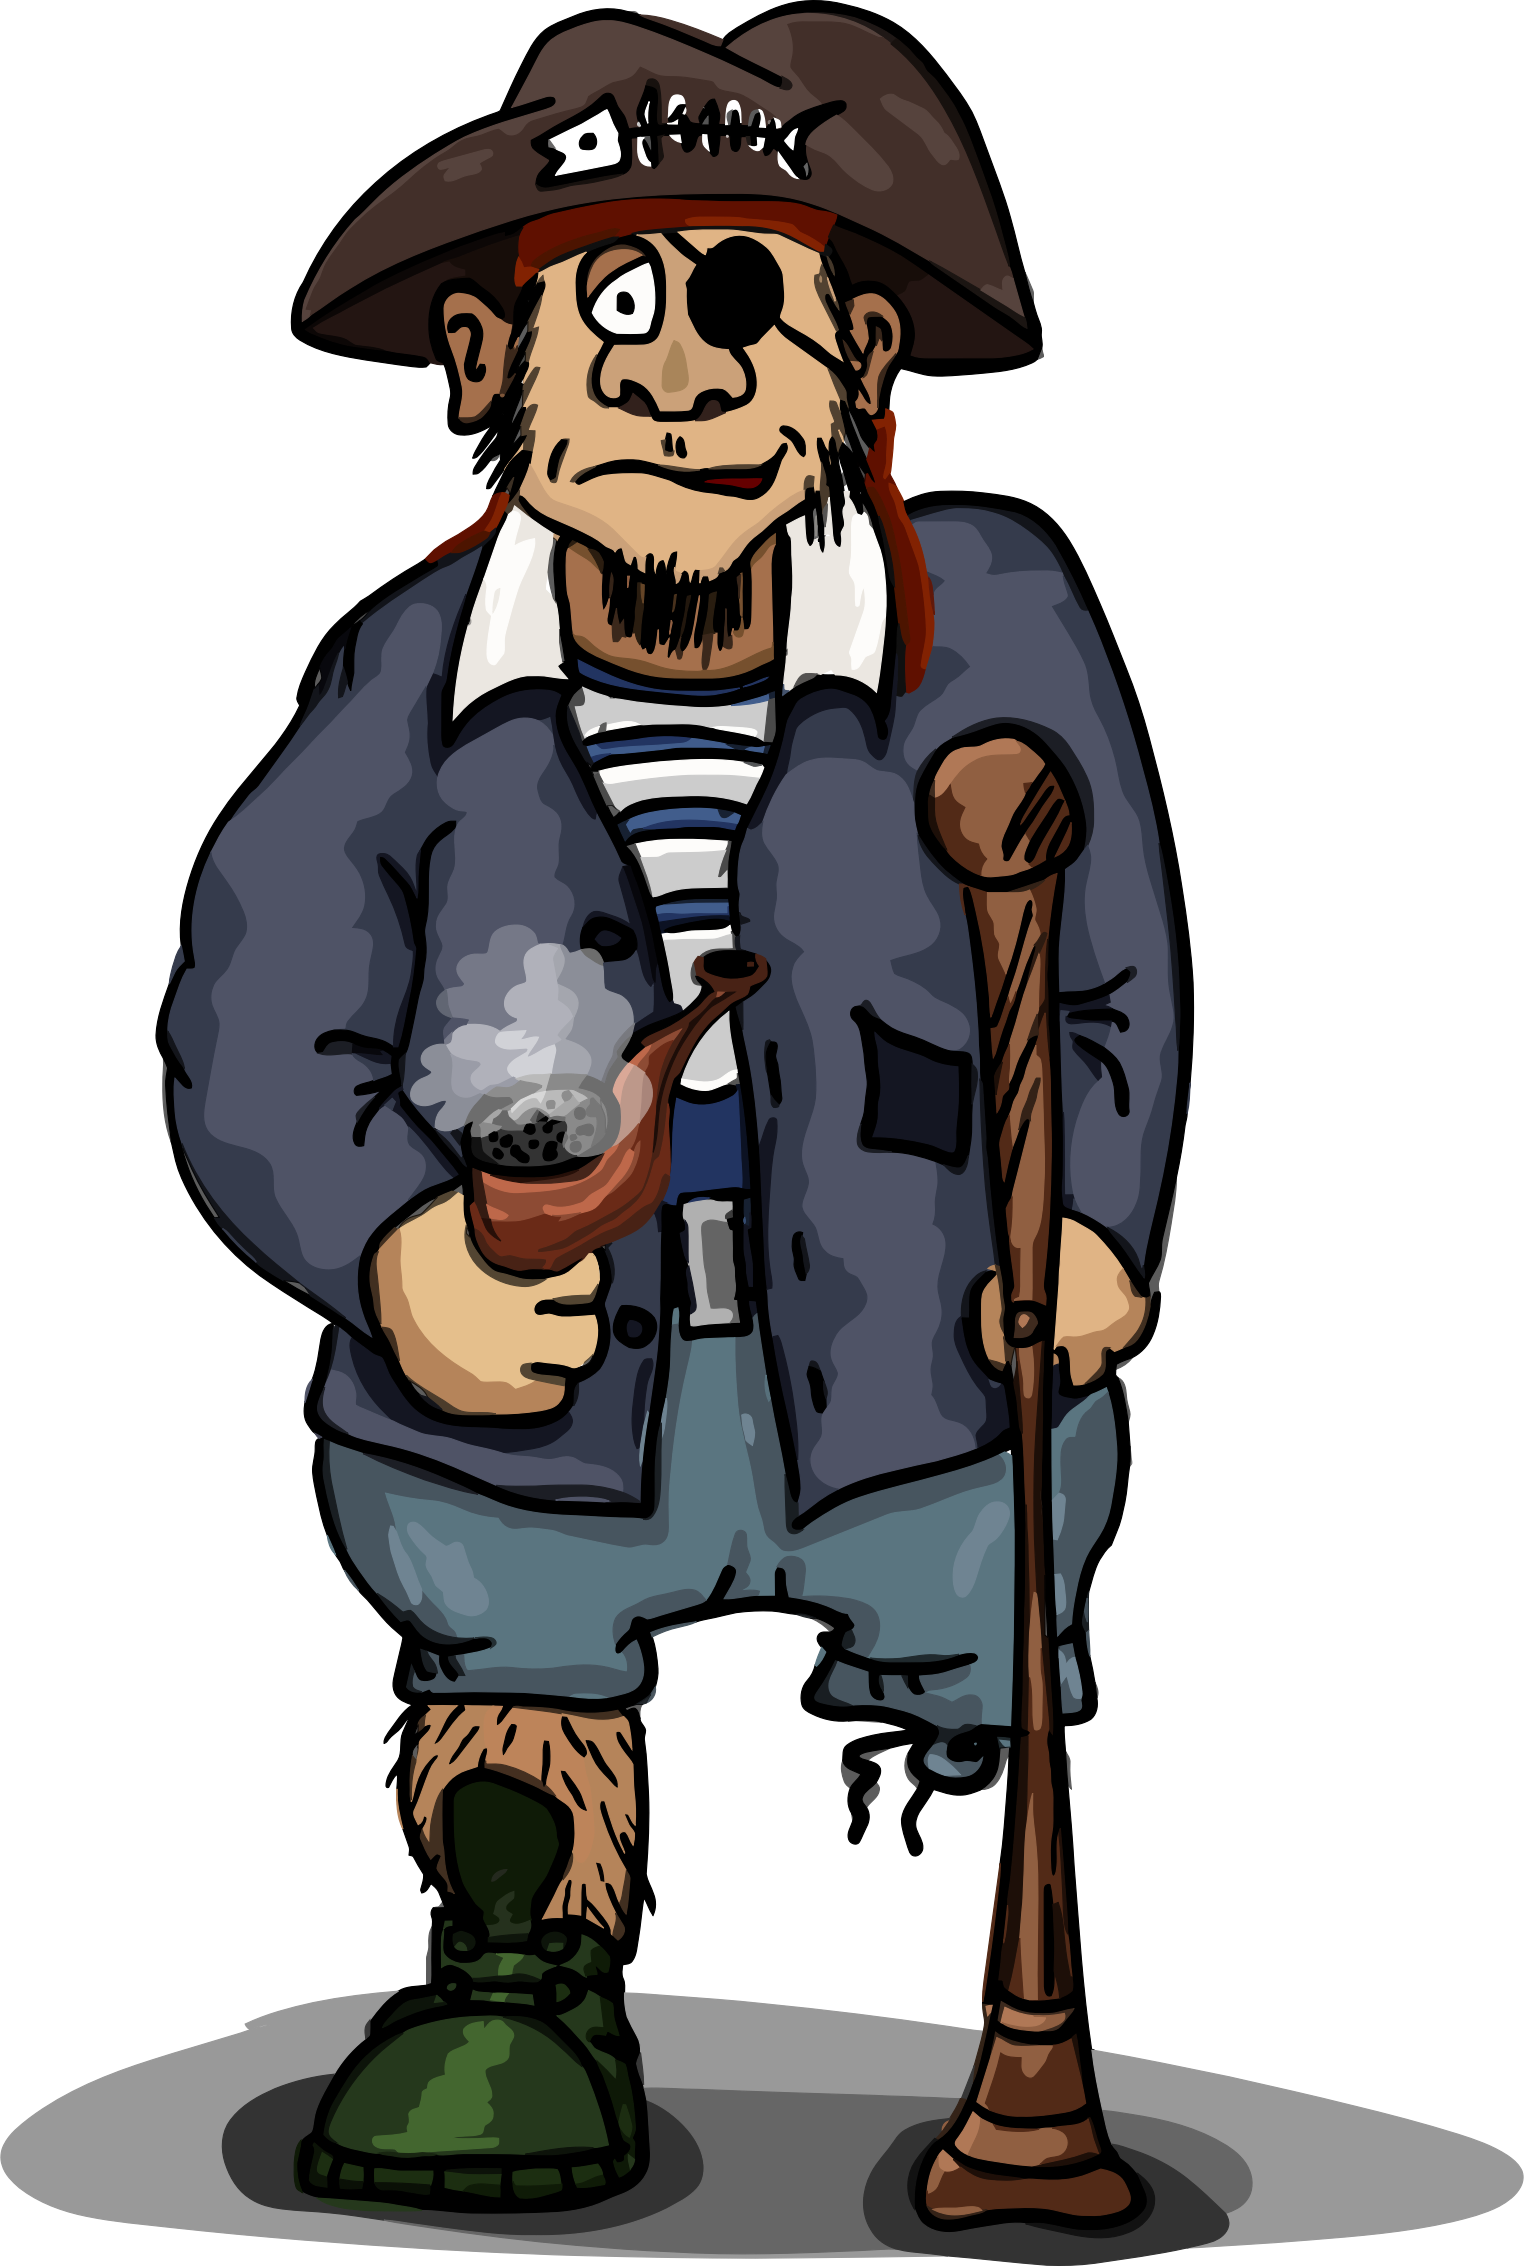 Pirate PNG Image